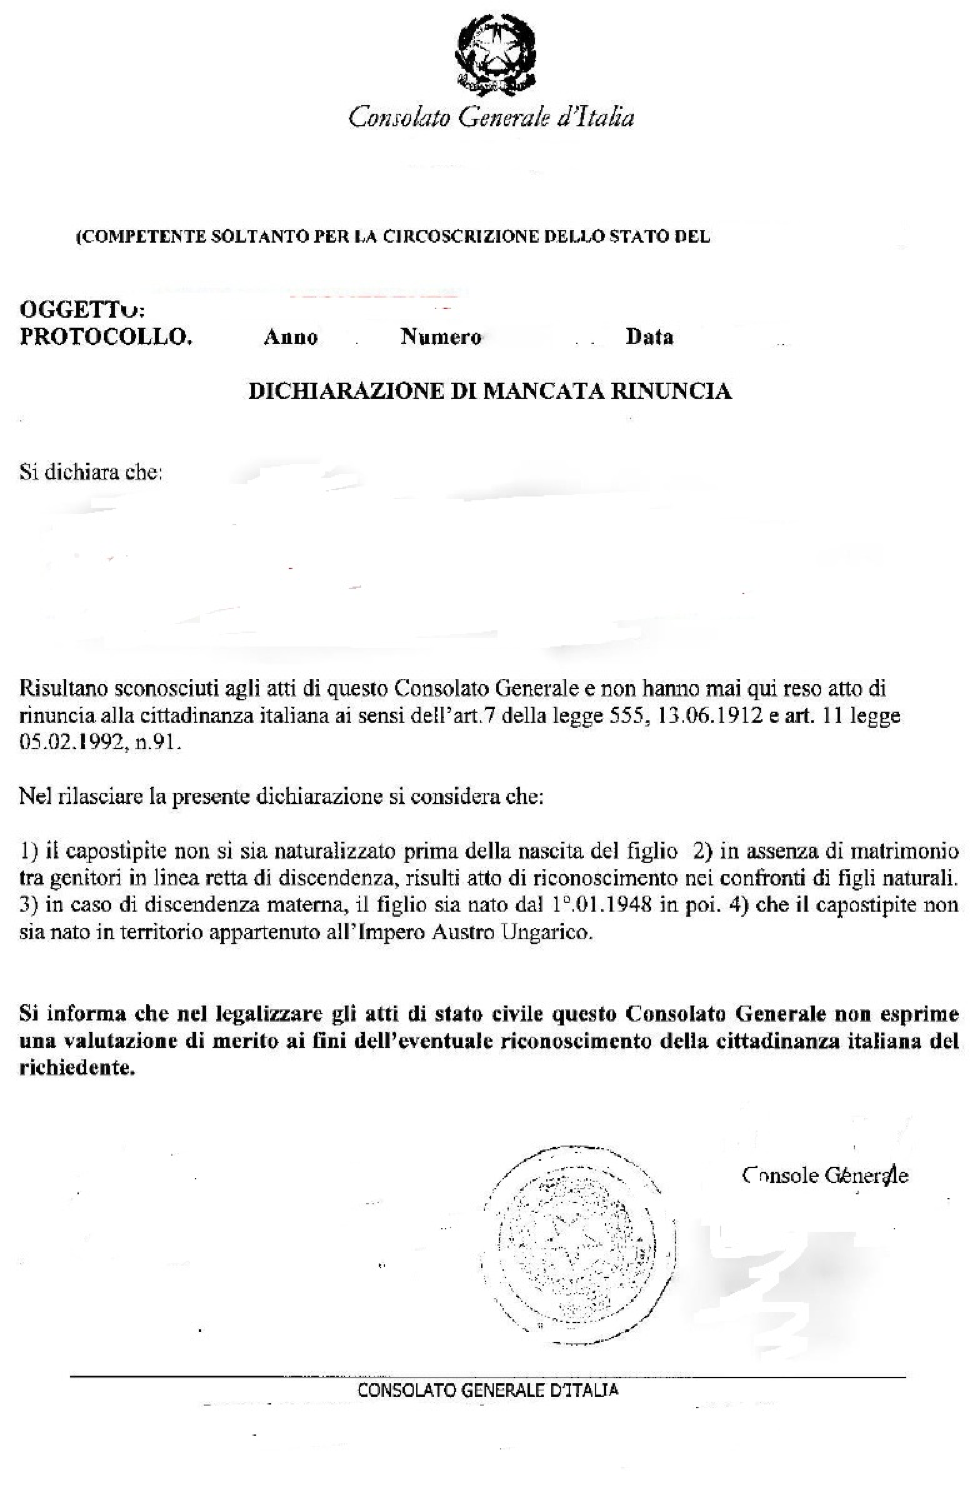 Applying for Italian dual citizenship in Italy